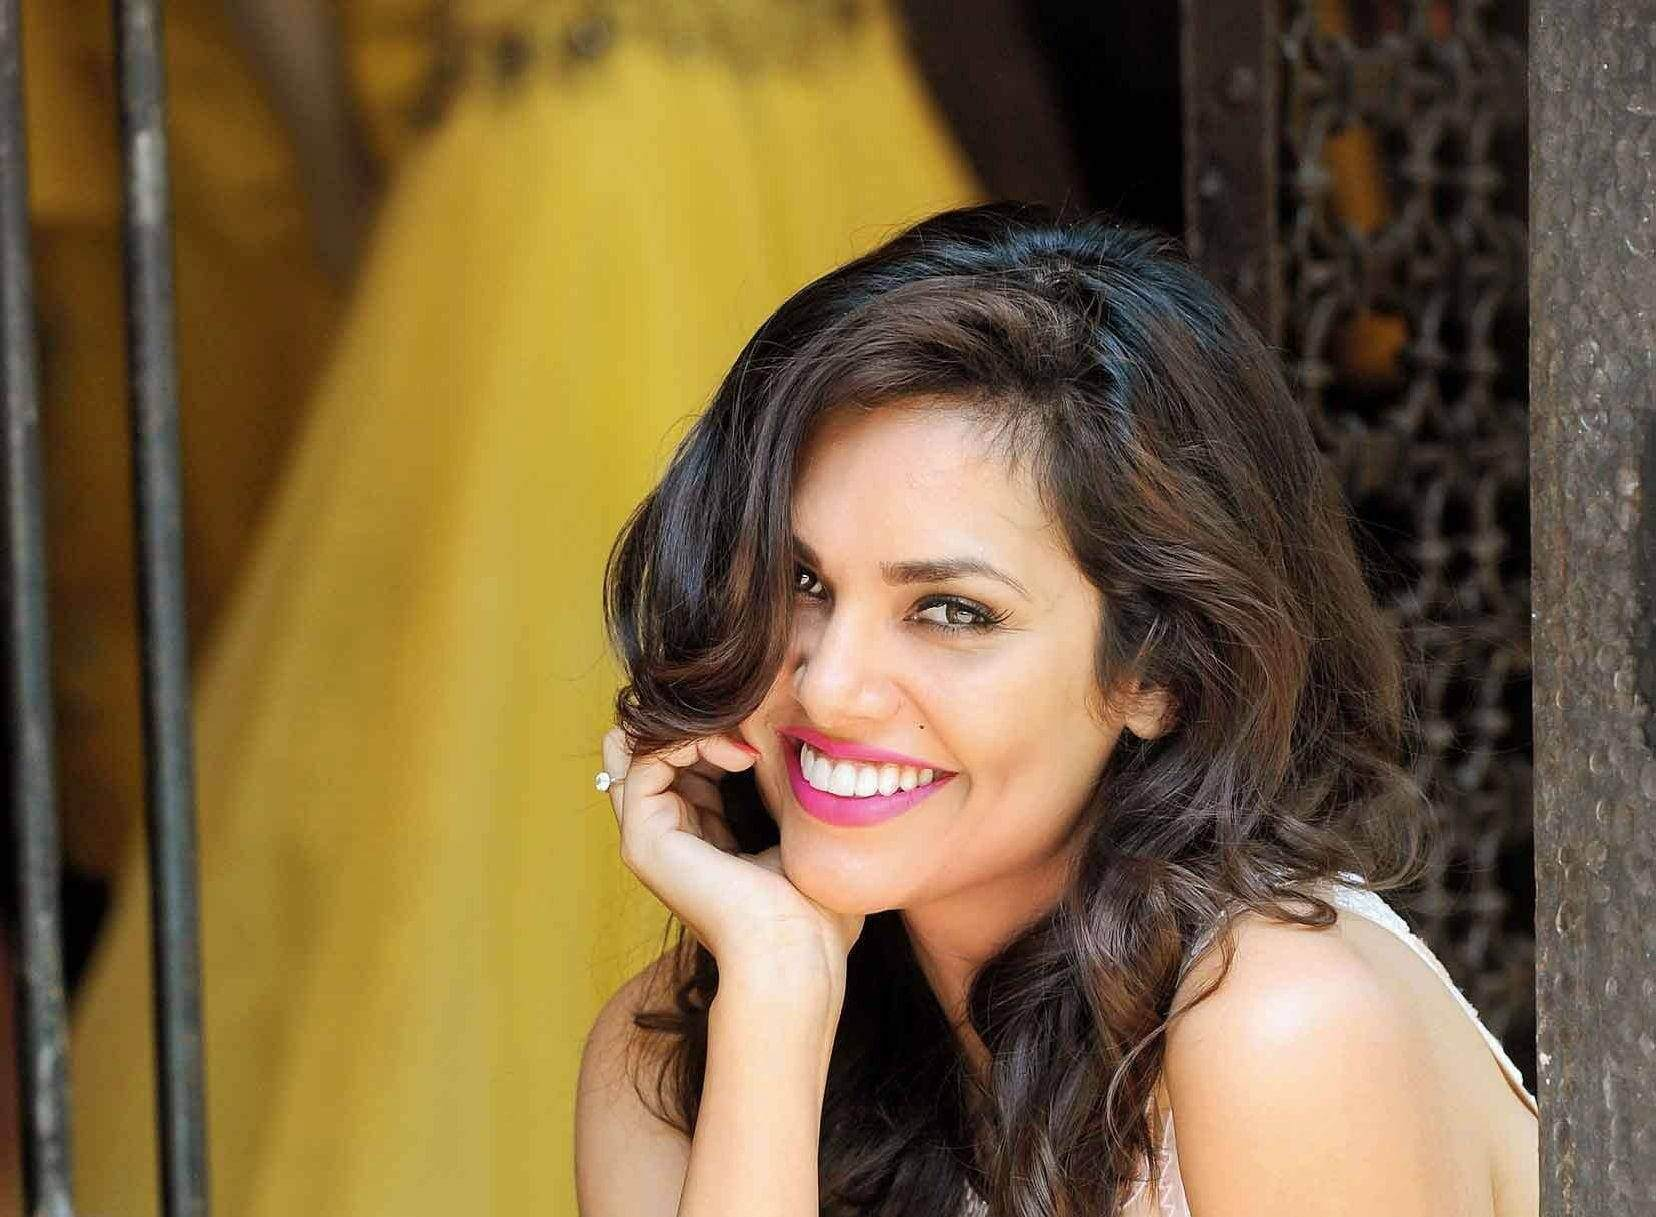 Esha Gupta Images(photos), Age, Height, Net Worth, Date Of Birth, Family, Biography, Son, Marriage, Boyfriend, Education, Awards, Hairstyle, Instagram, Twitter, Facebook, Wiki, Imdb (46)